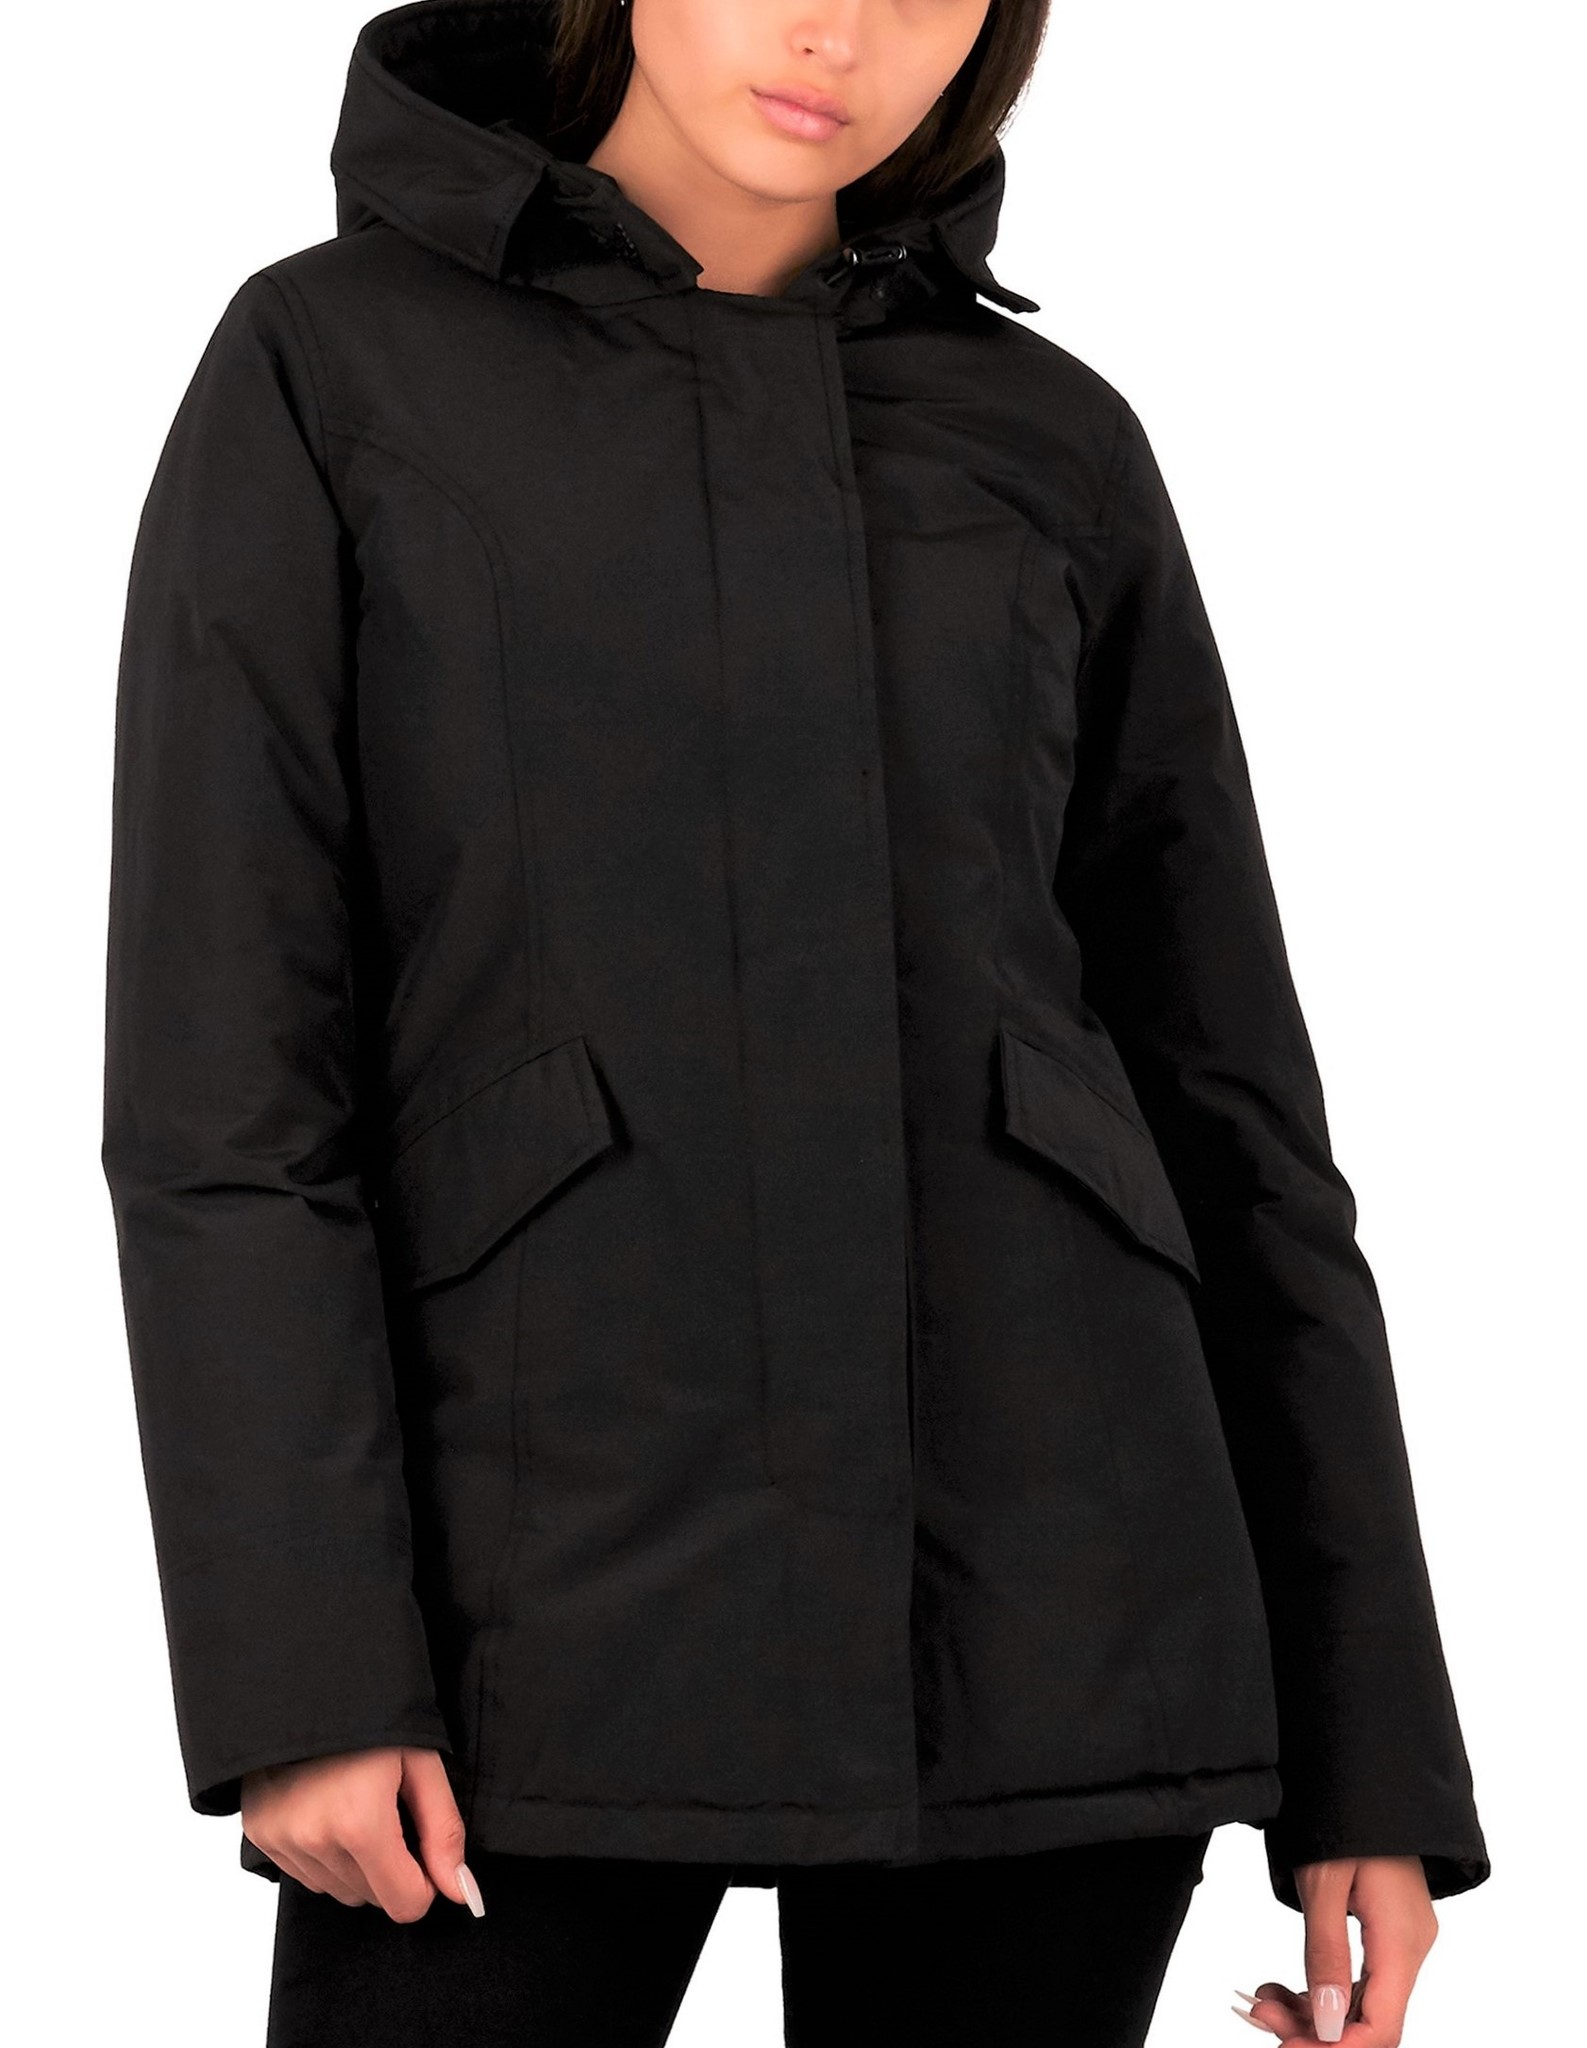 Airforce : 2 pocket parka HRW0425 Black